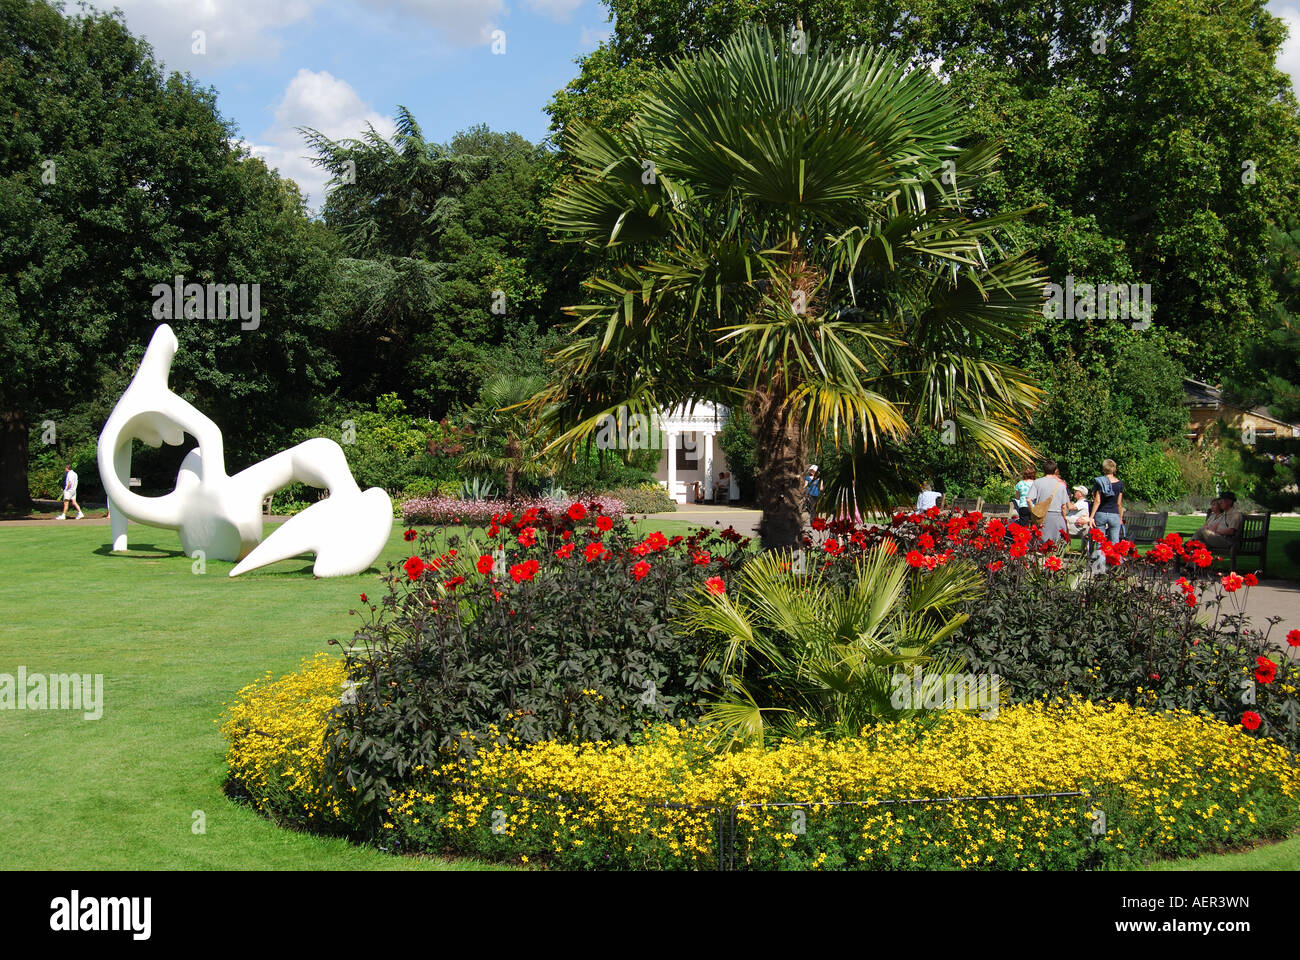 Henry Moore sculpture on lawn, Royal Botanical Gardens, Kew, Greater London, England, United Kingdom - Stock Image